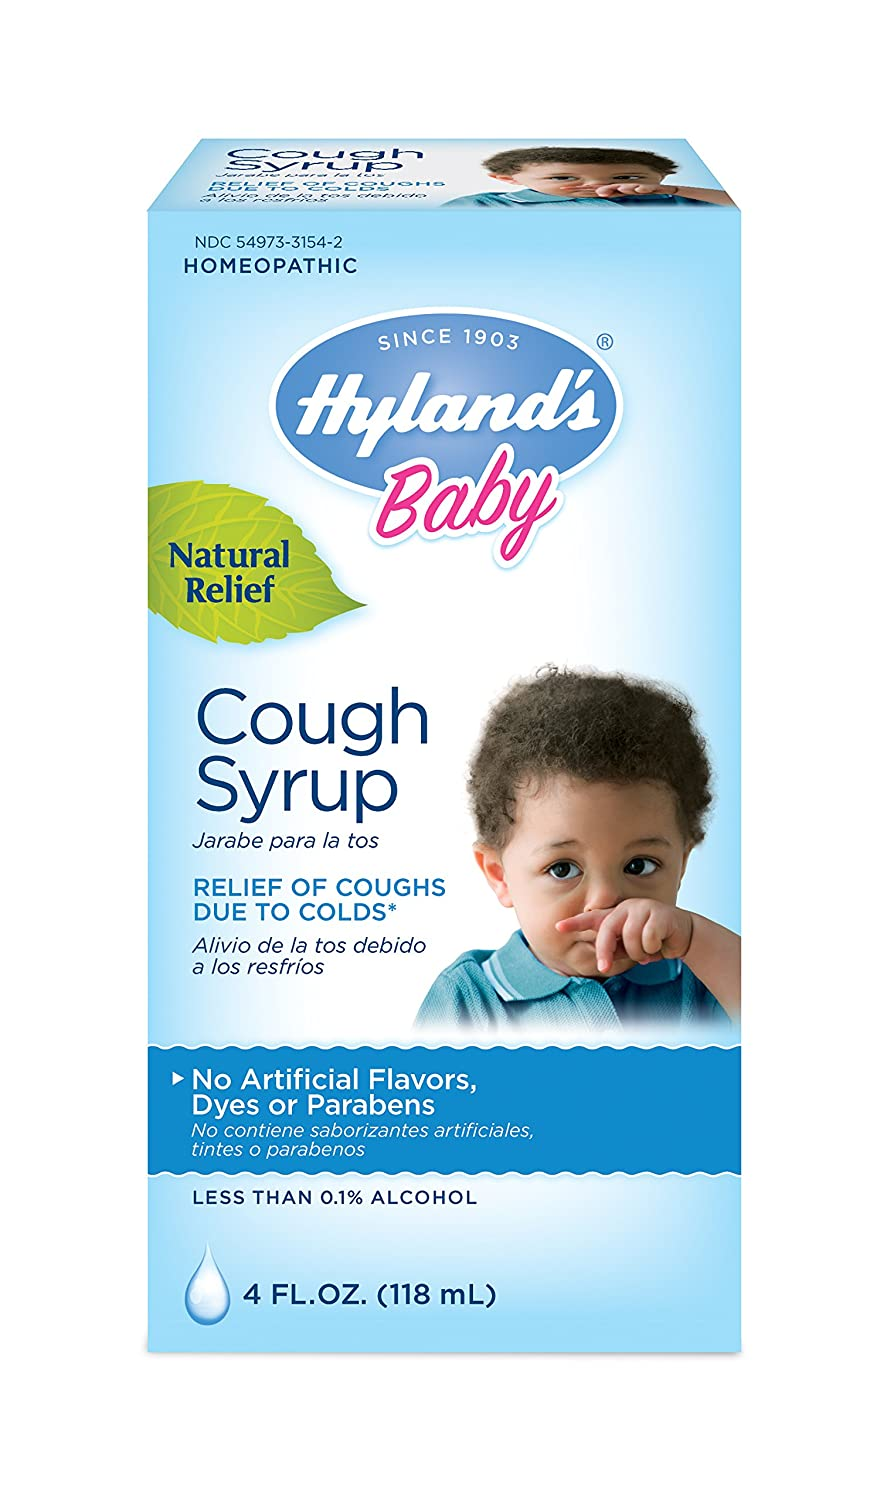 Natural remedy for cold and cough in babies